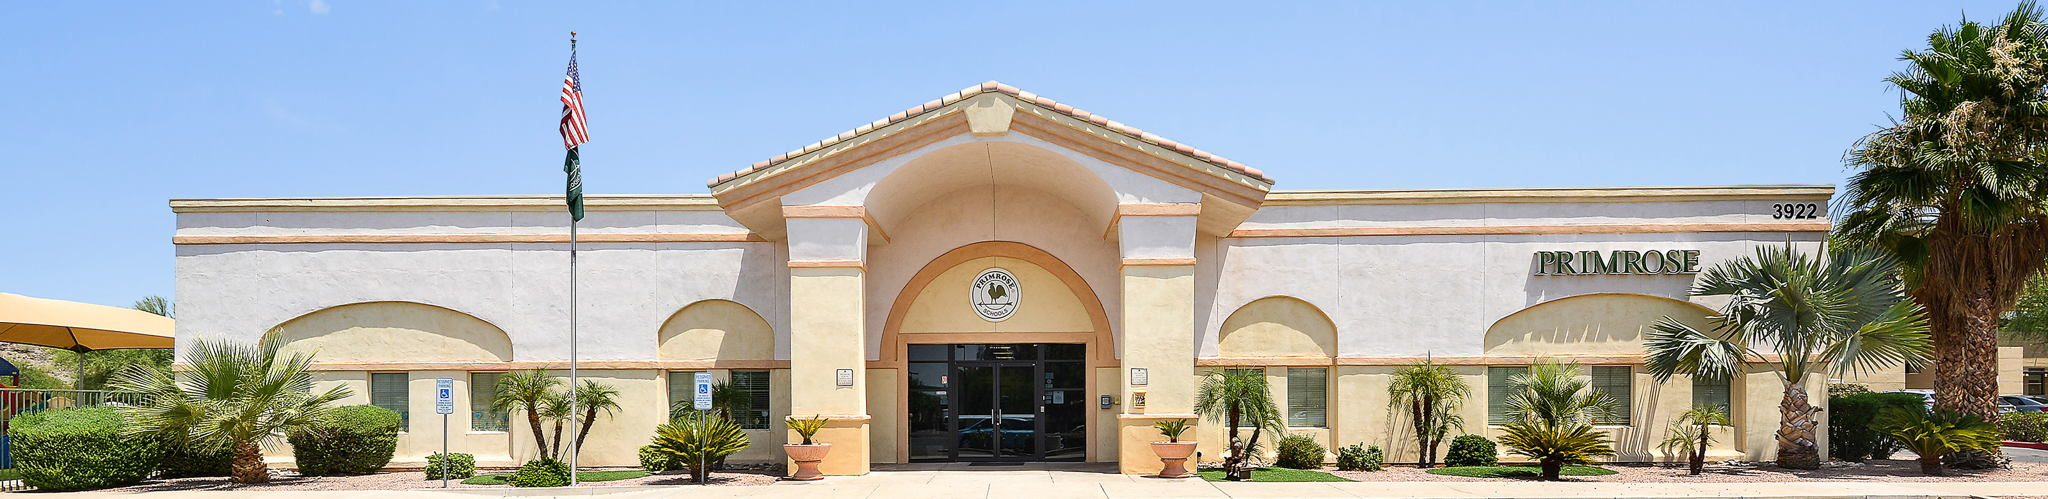 Exterior of a Primrose School of Ahwatukee